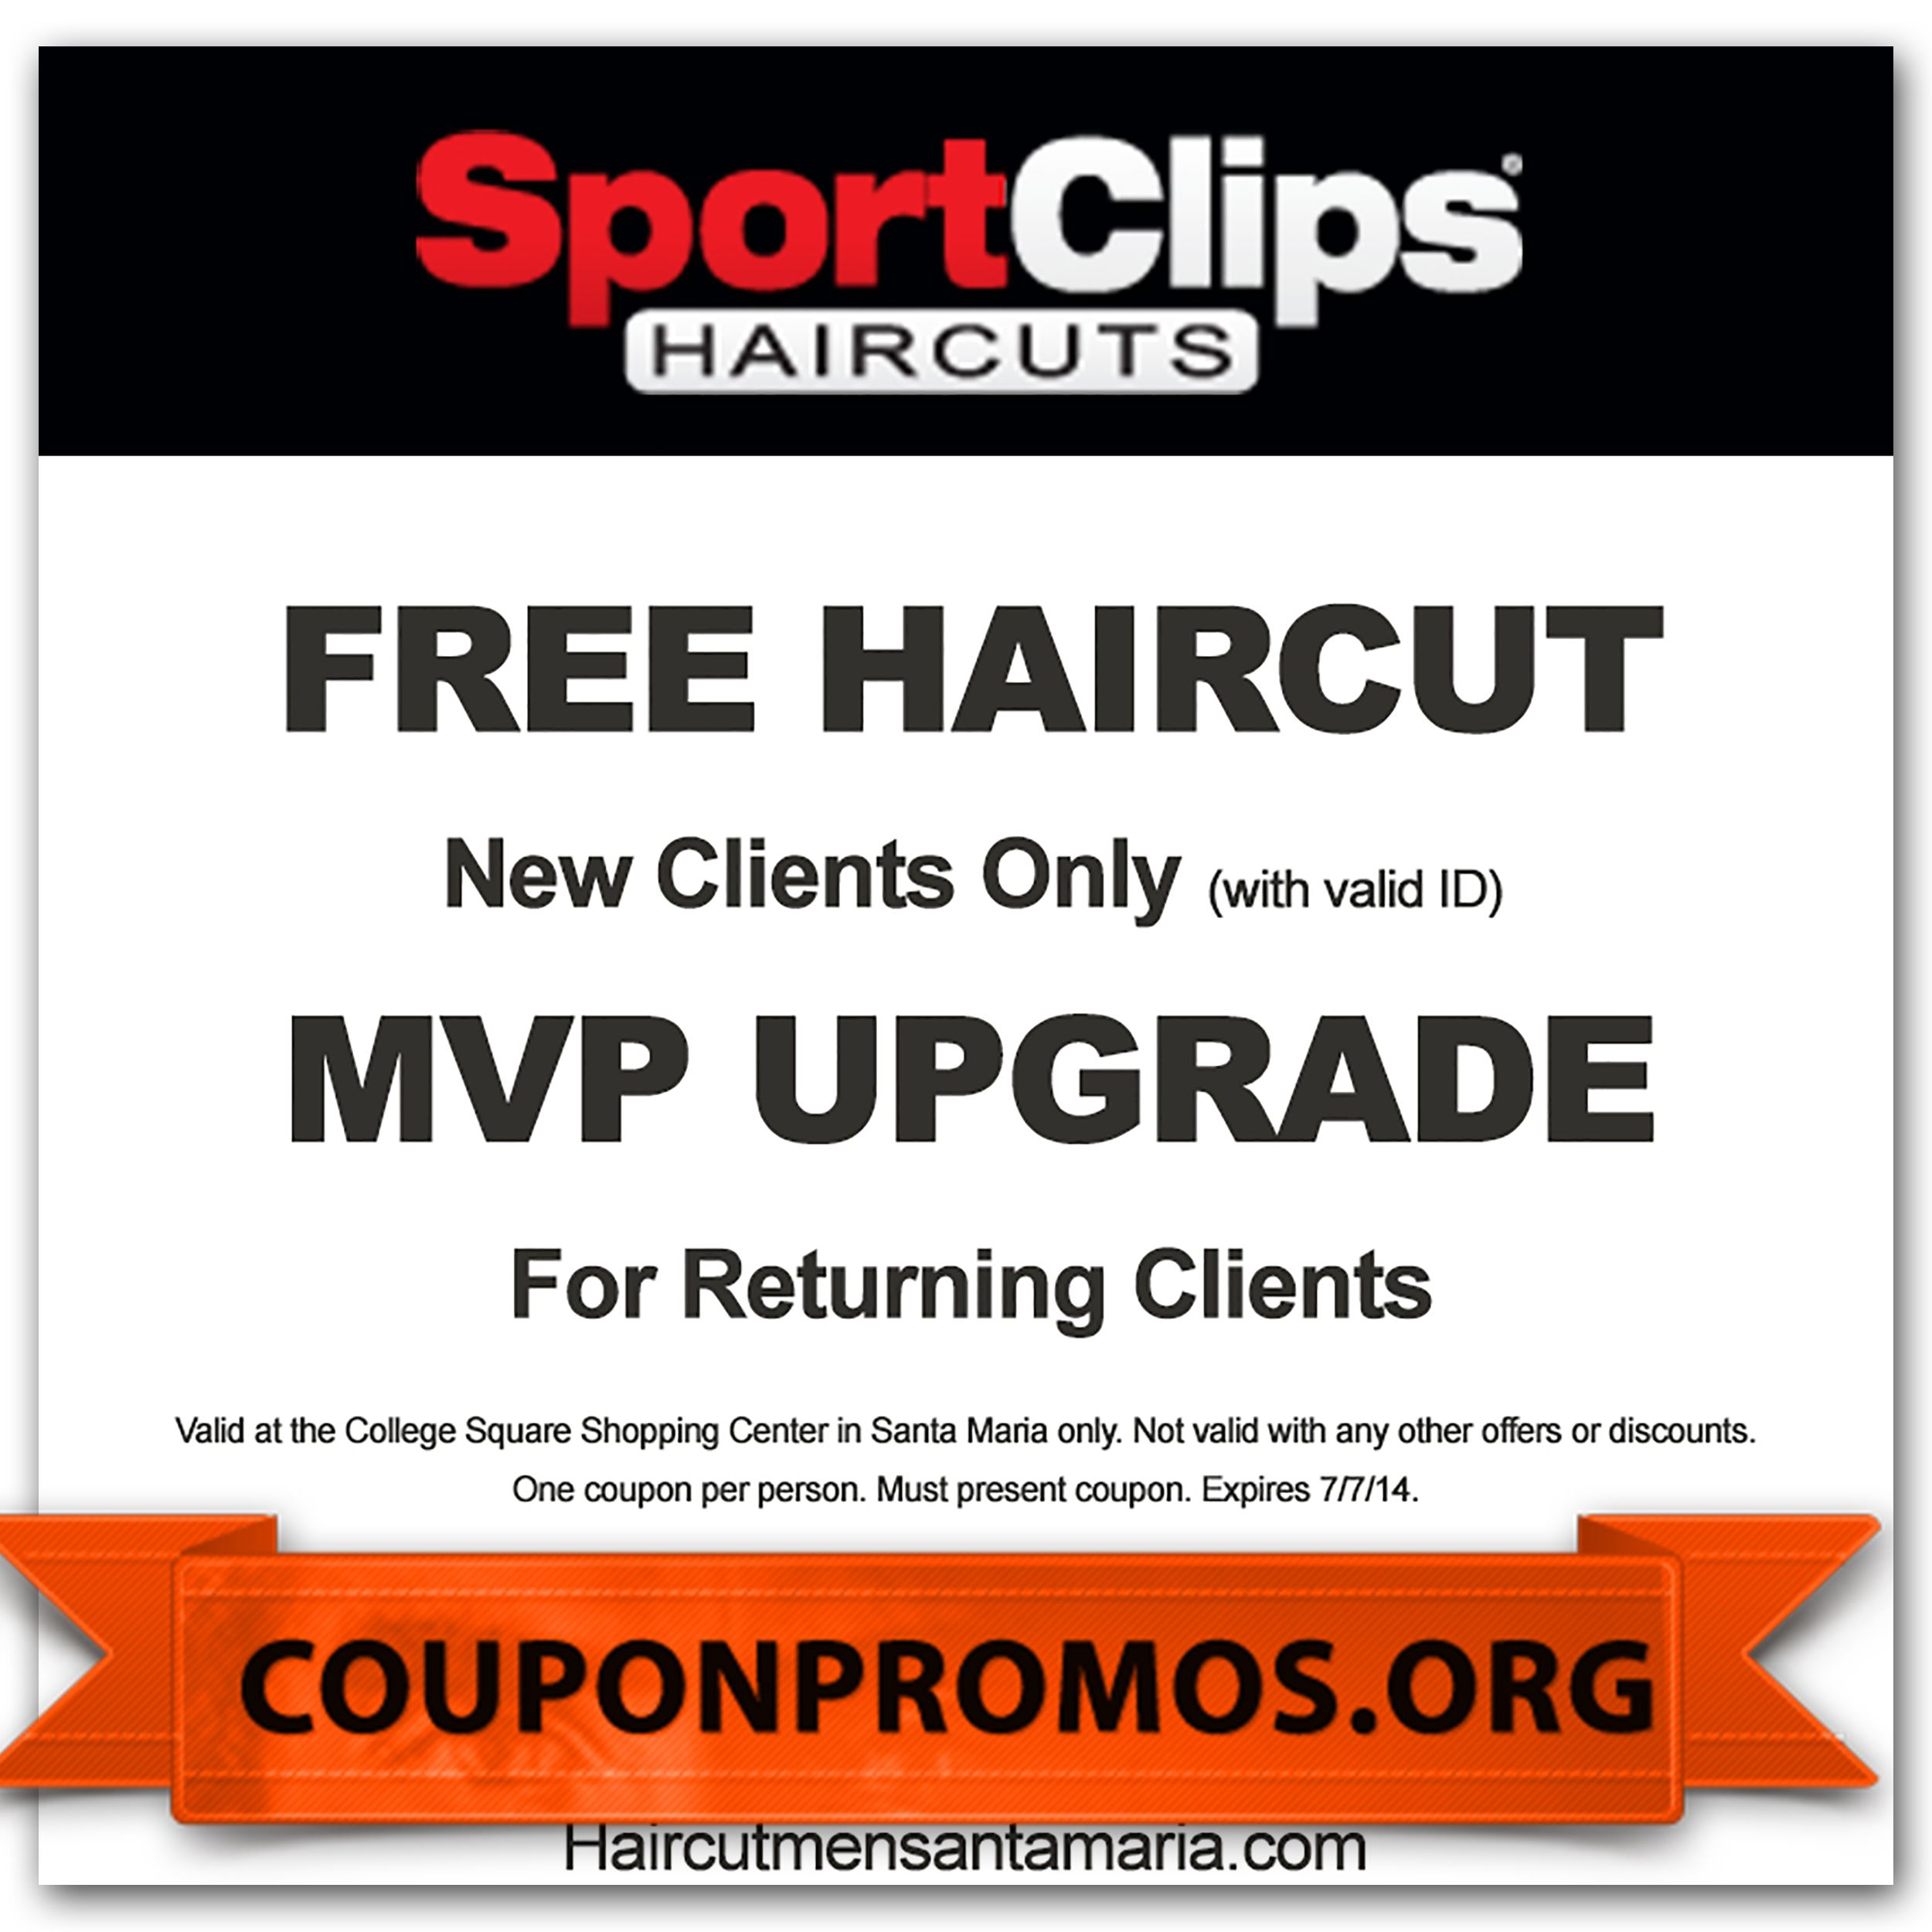 Sports Clips Coupons For November December | Coupons For Free - Great Clips Free Coupons Printable